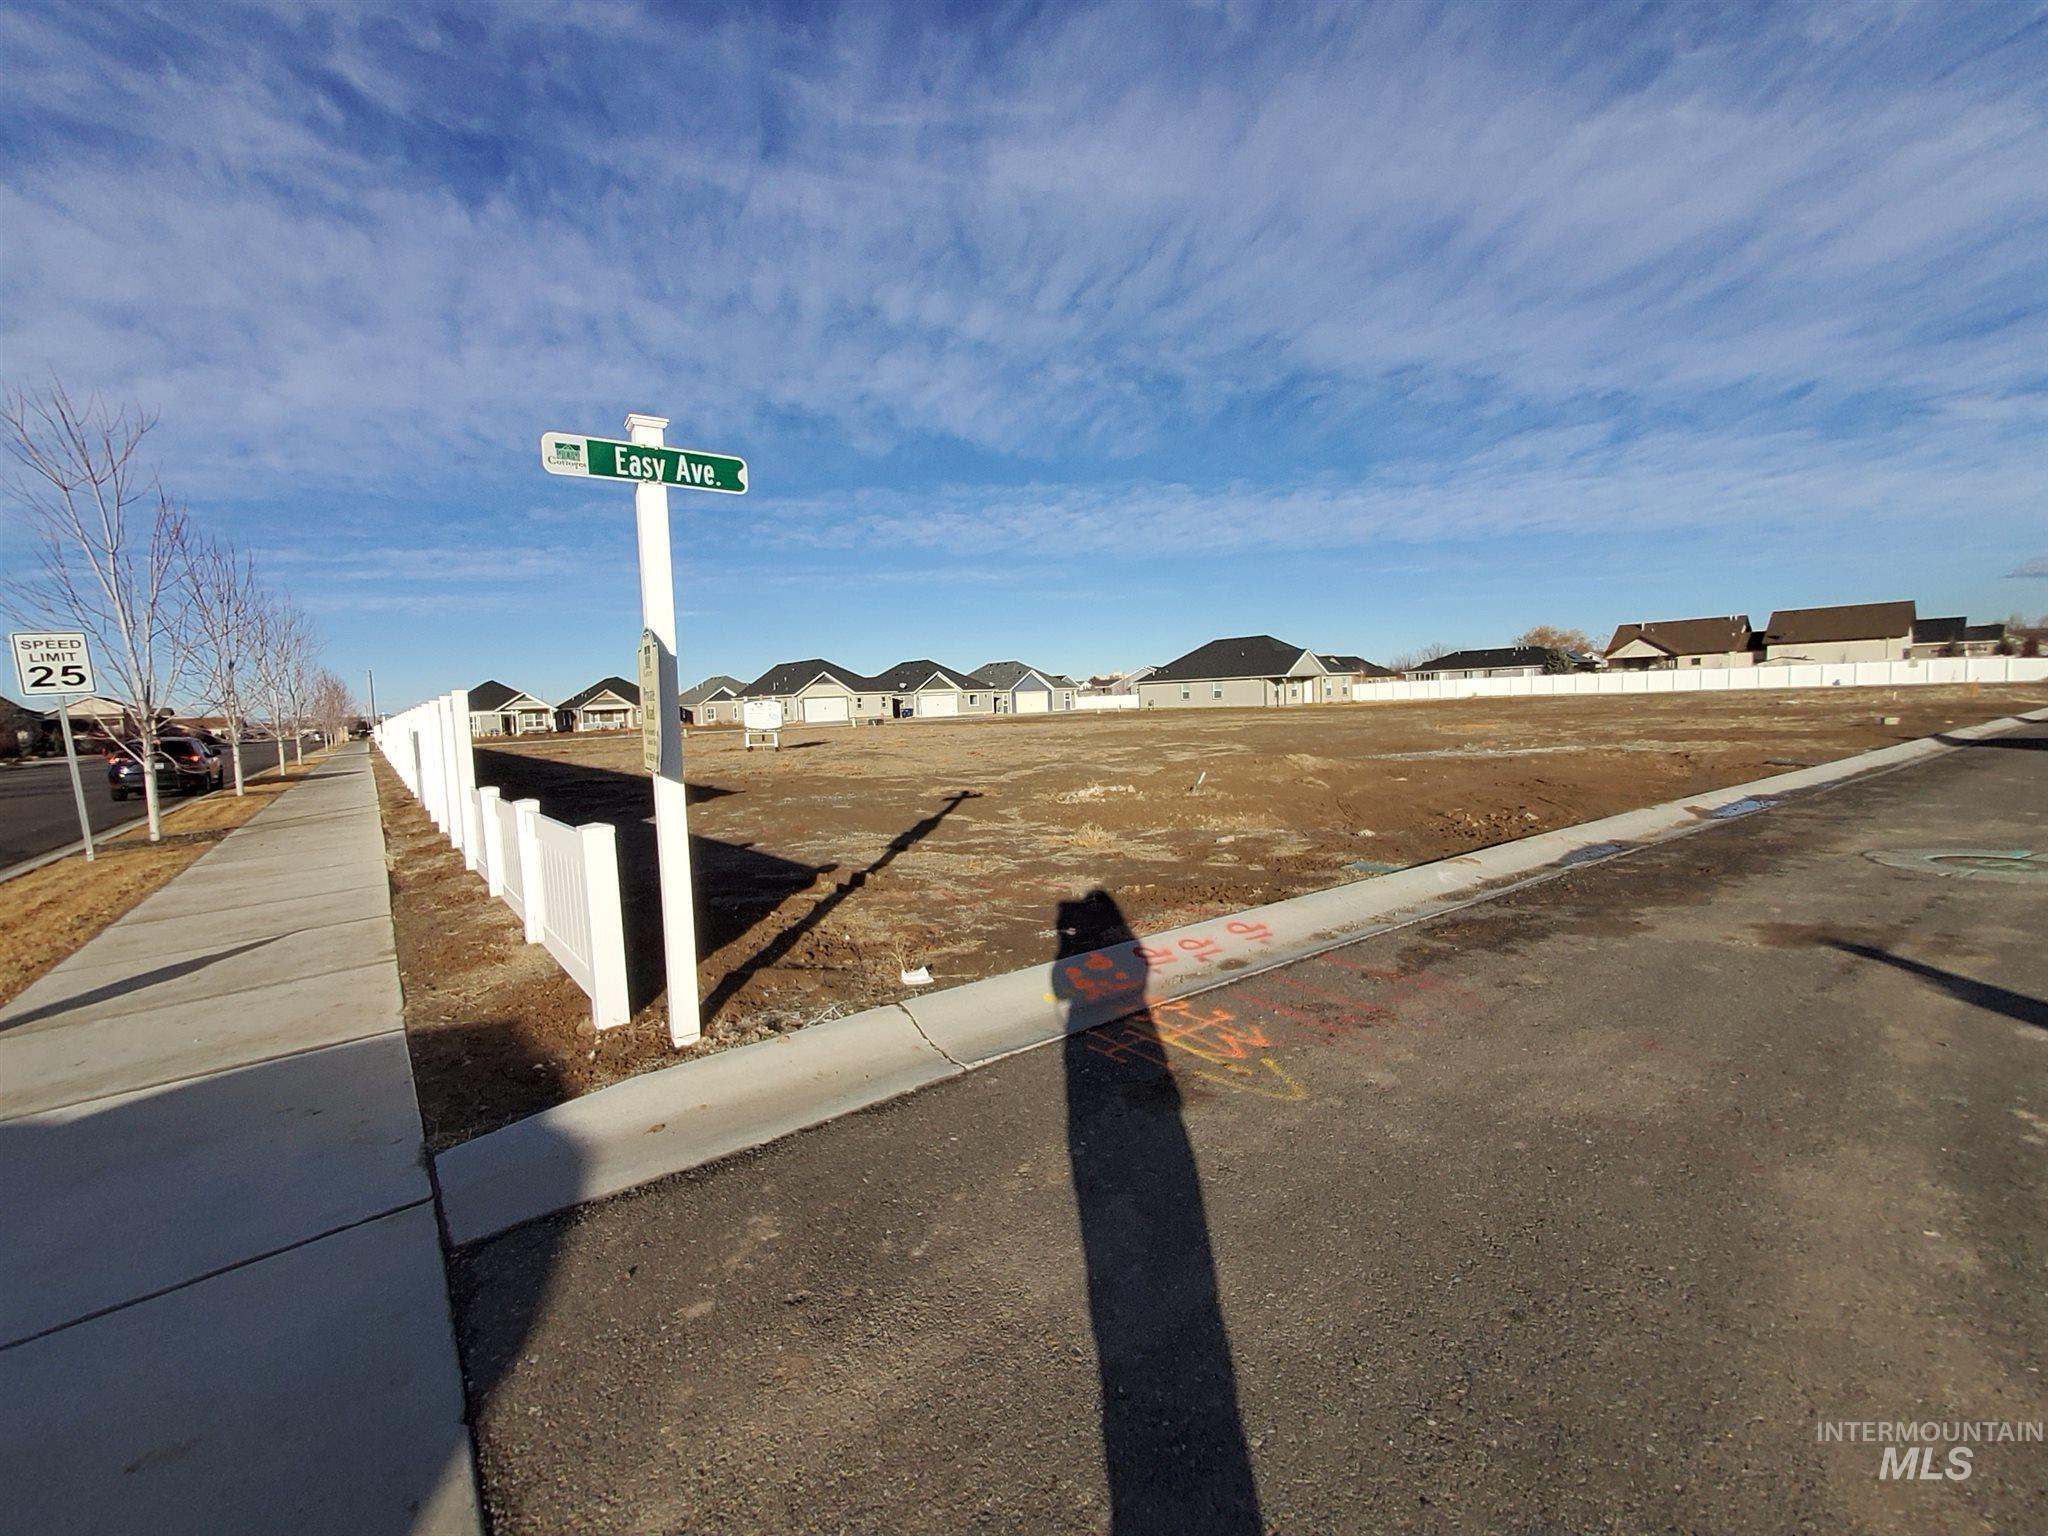 1071 Cottage Rd, Twin Falls, Idaho 83301, Land For Sale, Price $59,000, 98790766